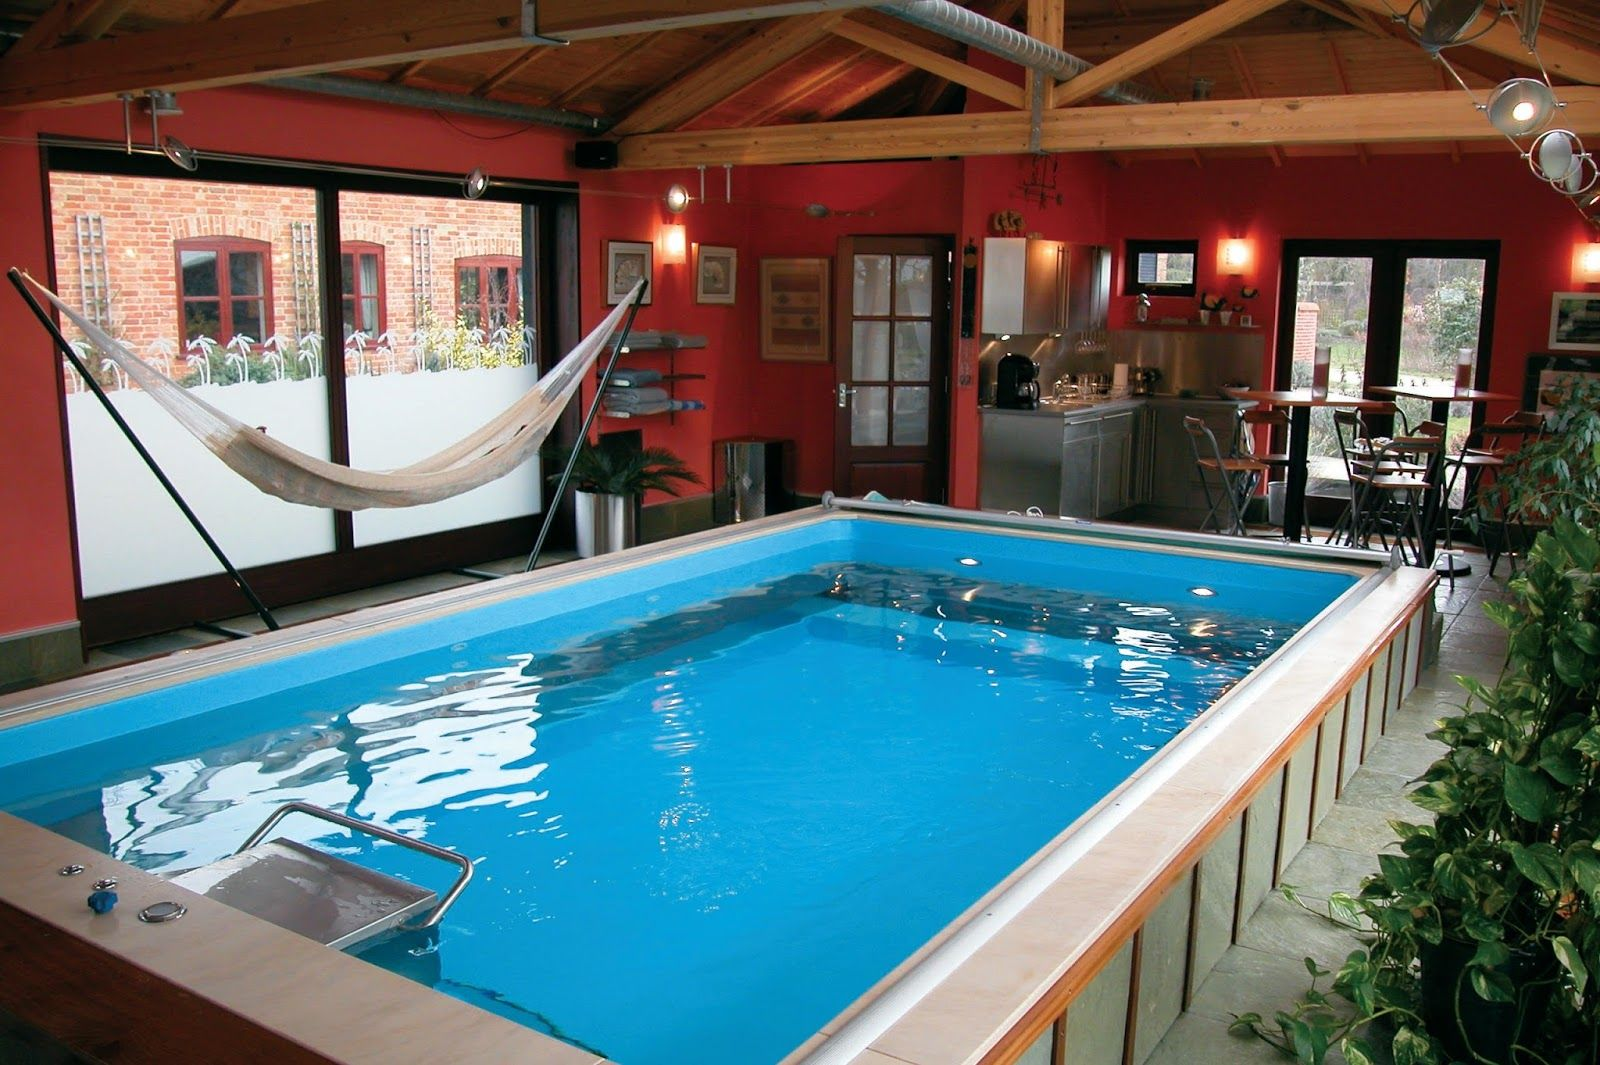 Inside Pool Cave deep red walls and exposed wood beams define this man cave with a